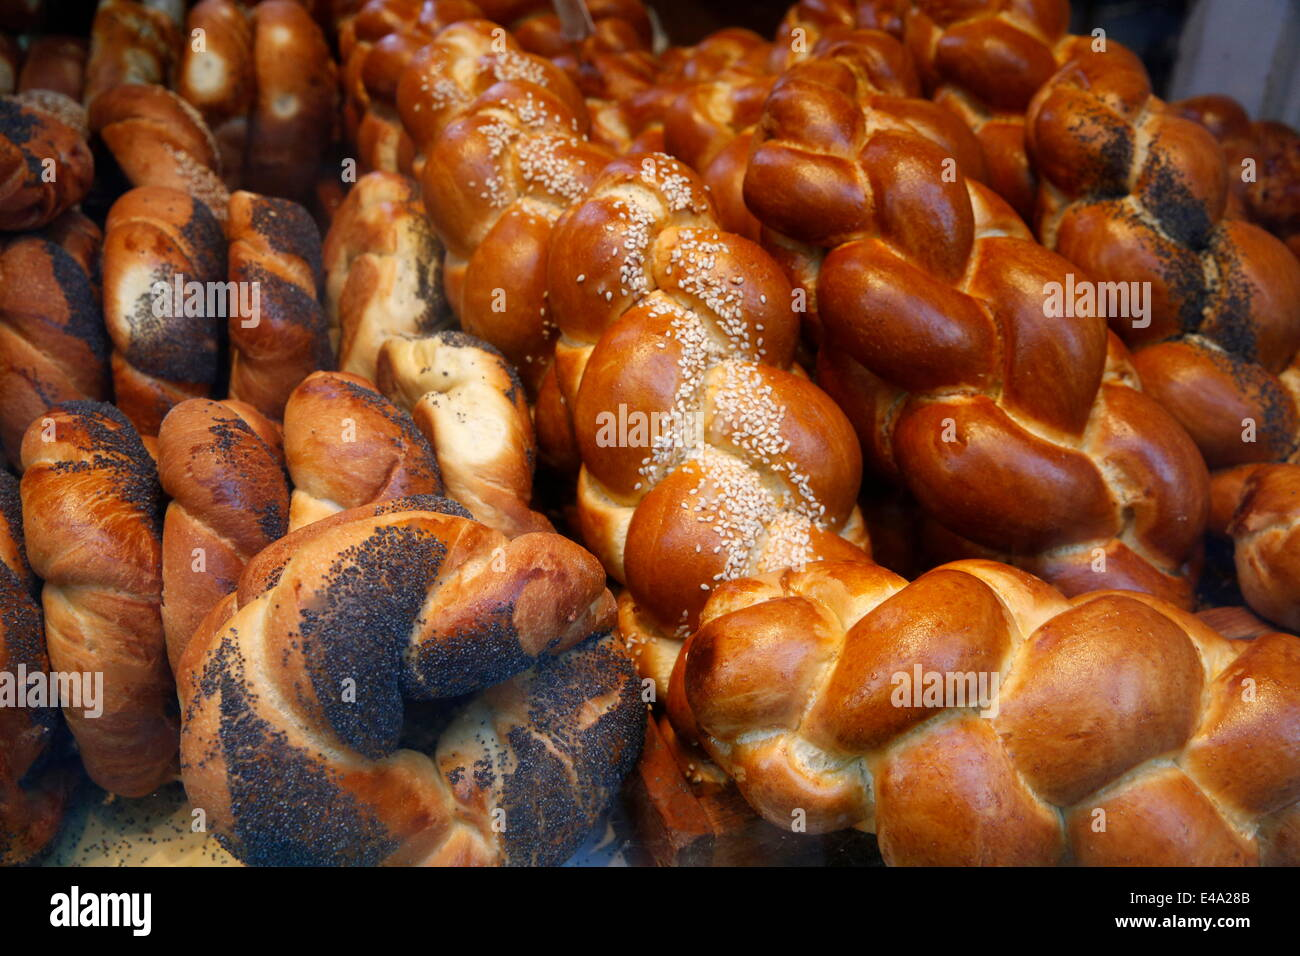 Bagels in a Jewish bakery, Paris, France, Europe - Stock Image